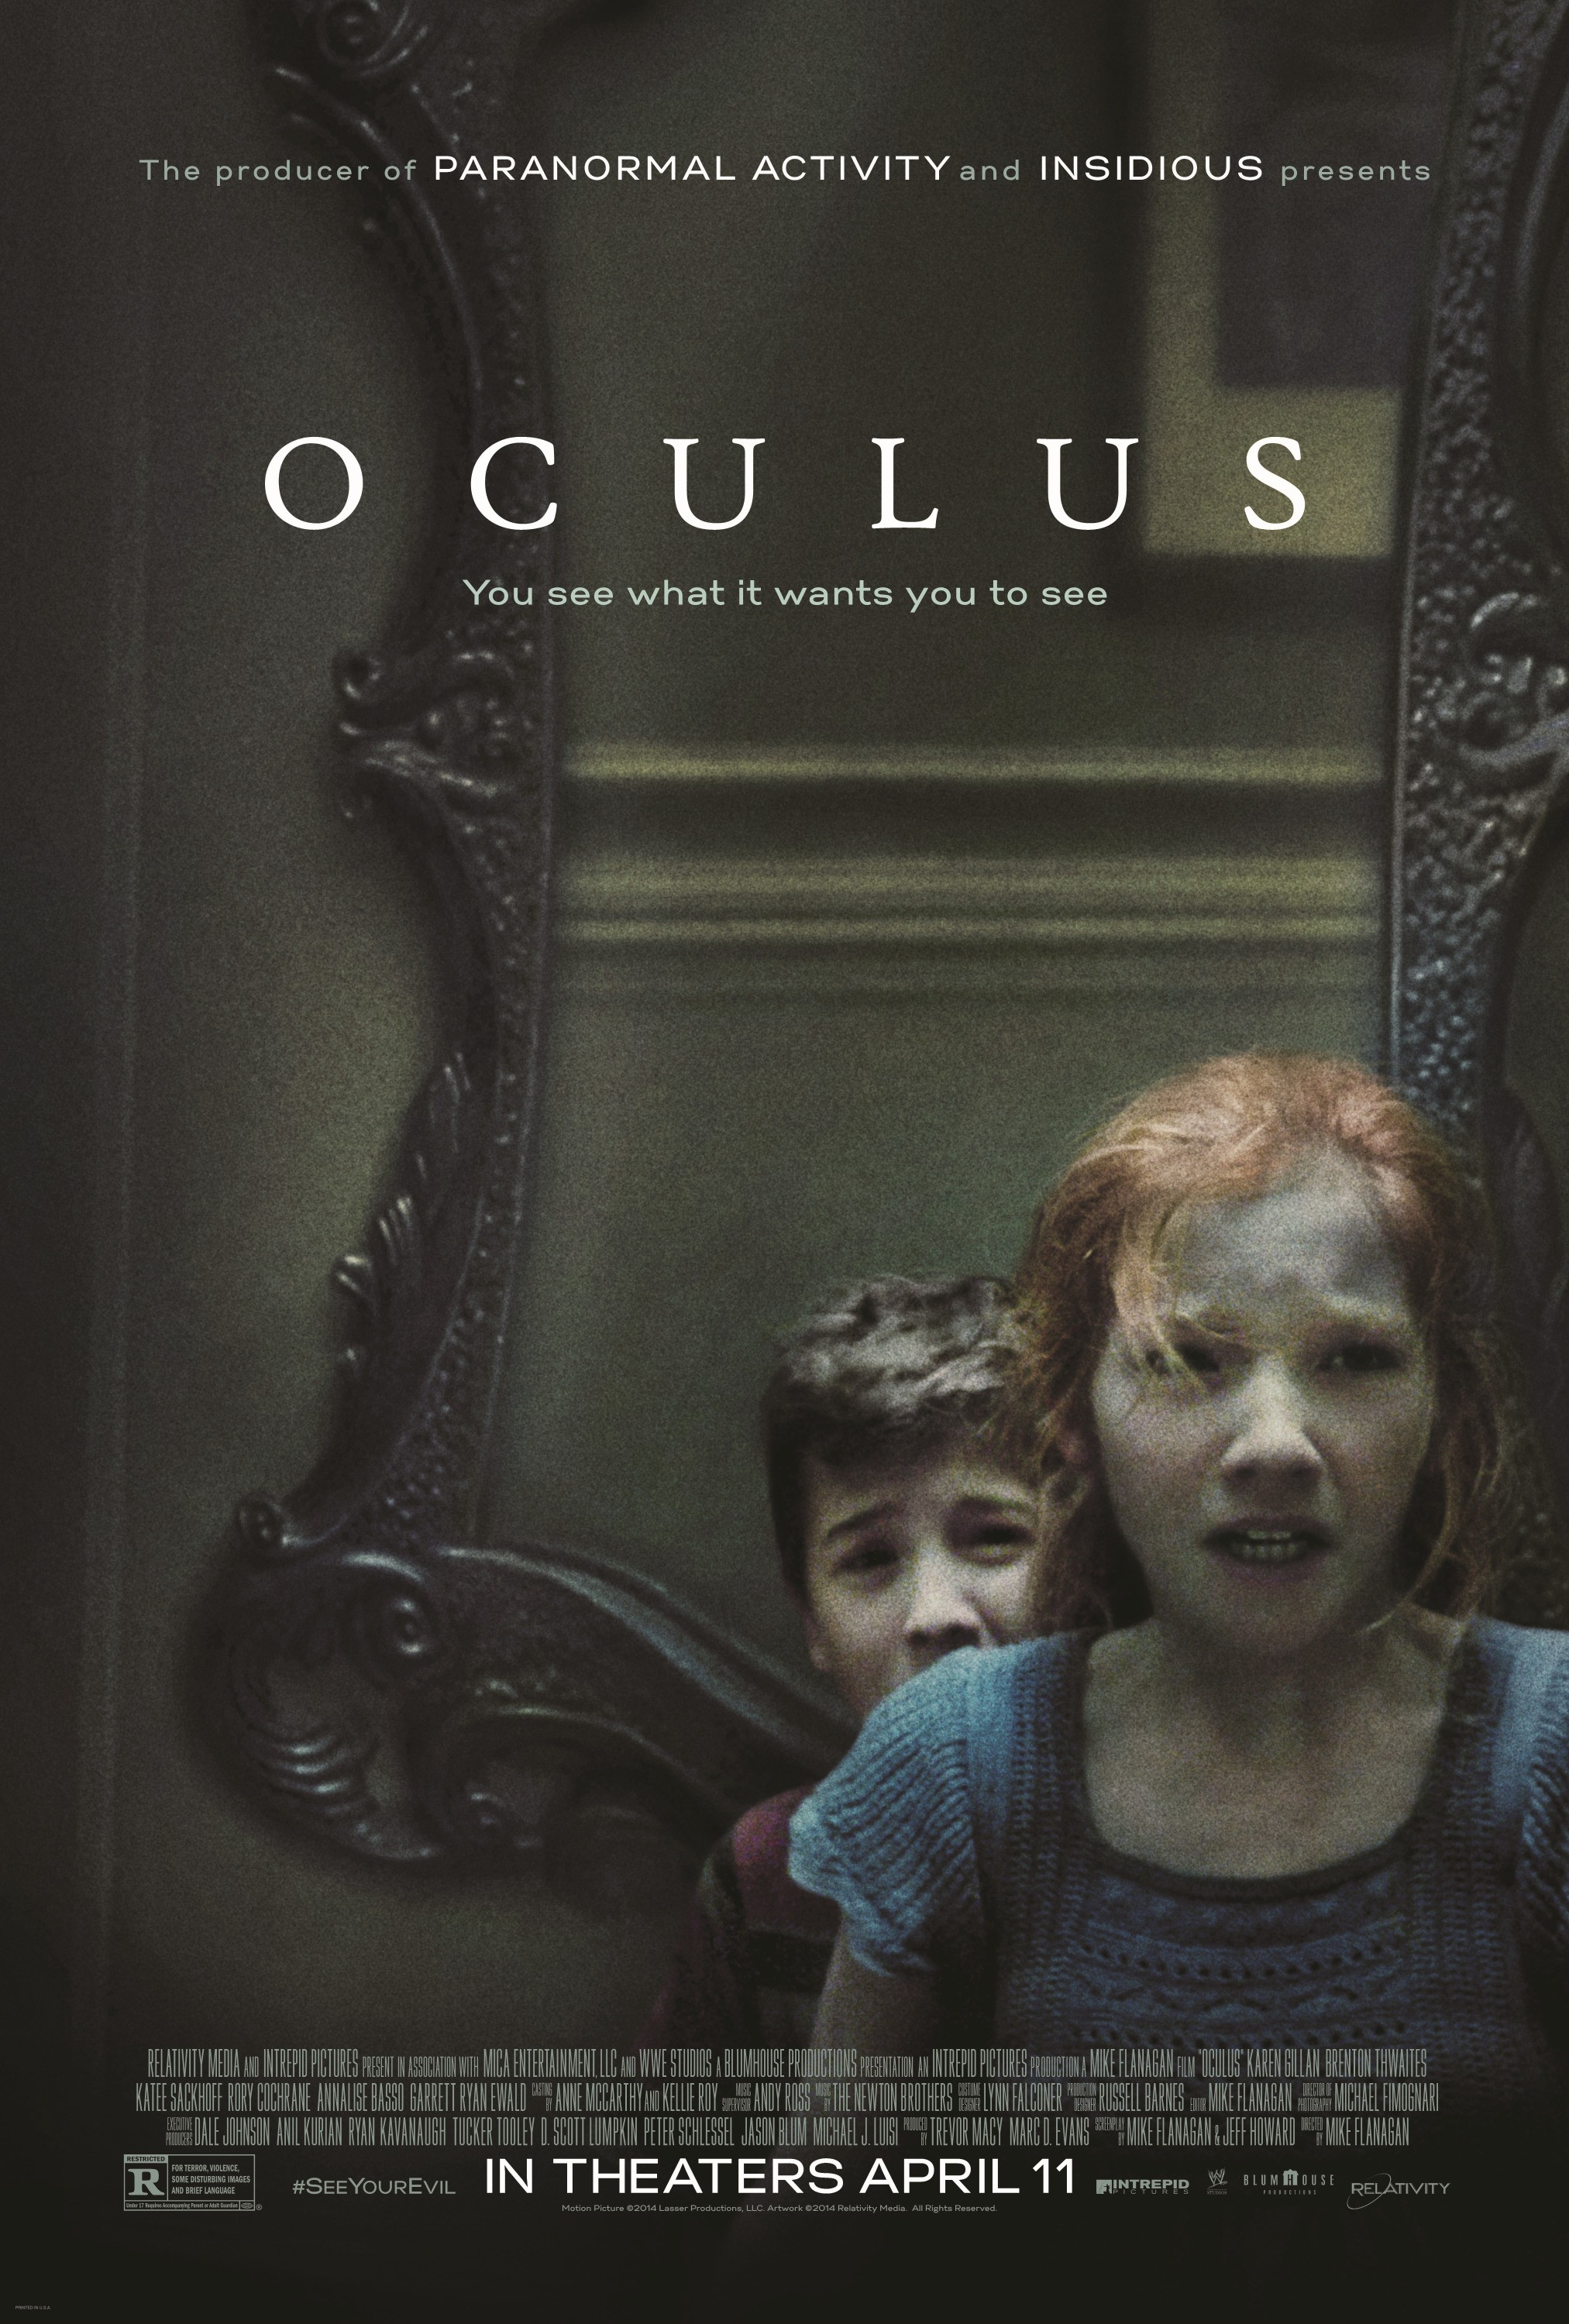 OCULUS-Official Poster Banner PROMO POSTER-12MARCO2014-02